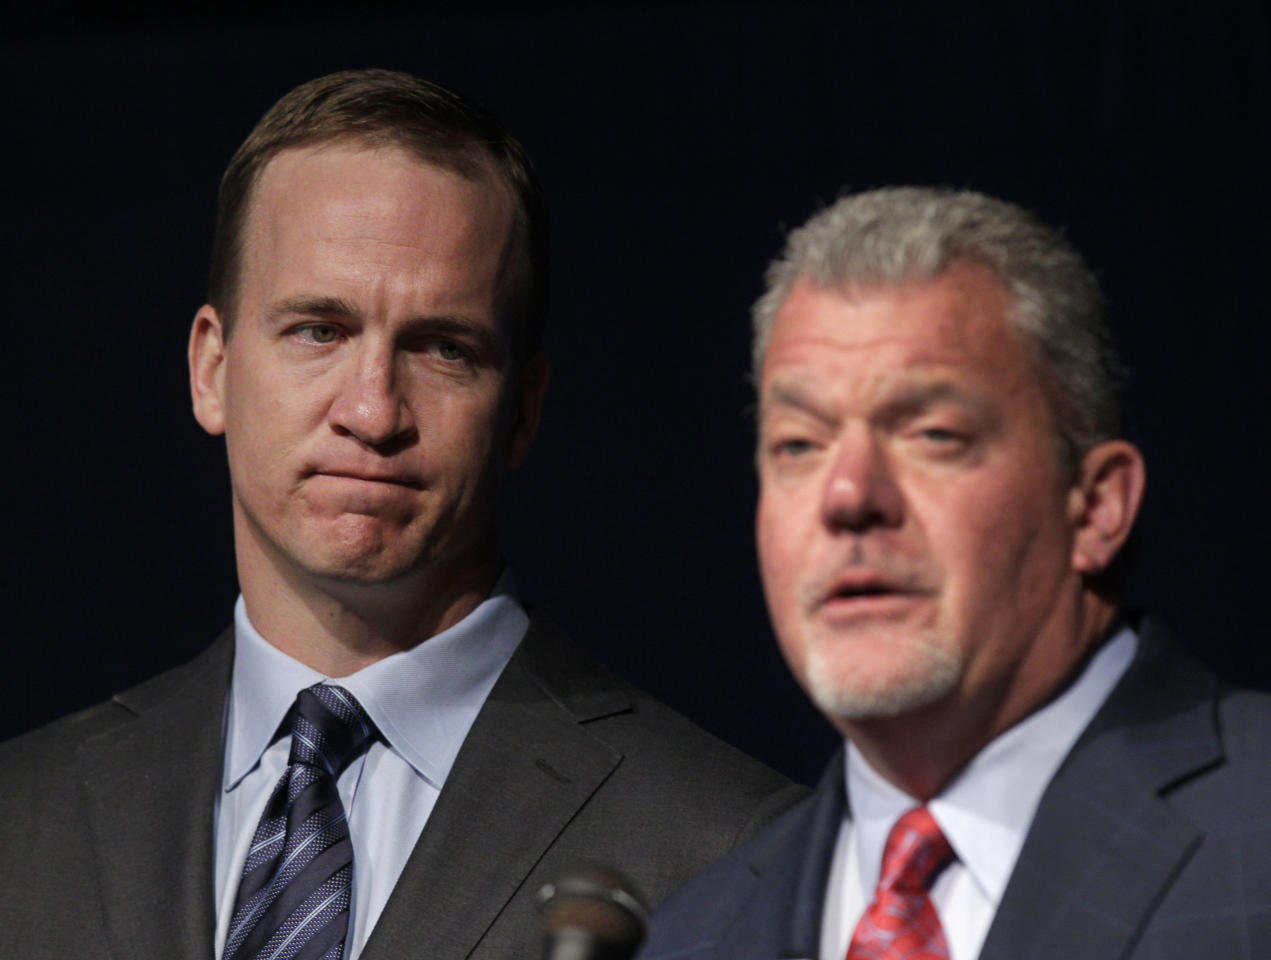 Quarterback Peyton Manning, left, listens as Indianapolis Colts owner Jim Irsay announces that the NFL football team will release quarterback Peyton Manning during a news conference in Indianapolis, Wednesday, March 7, 2012. (AP Photo/Michael Conroy)